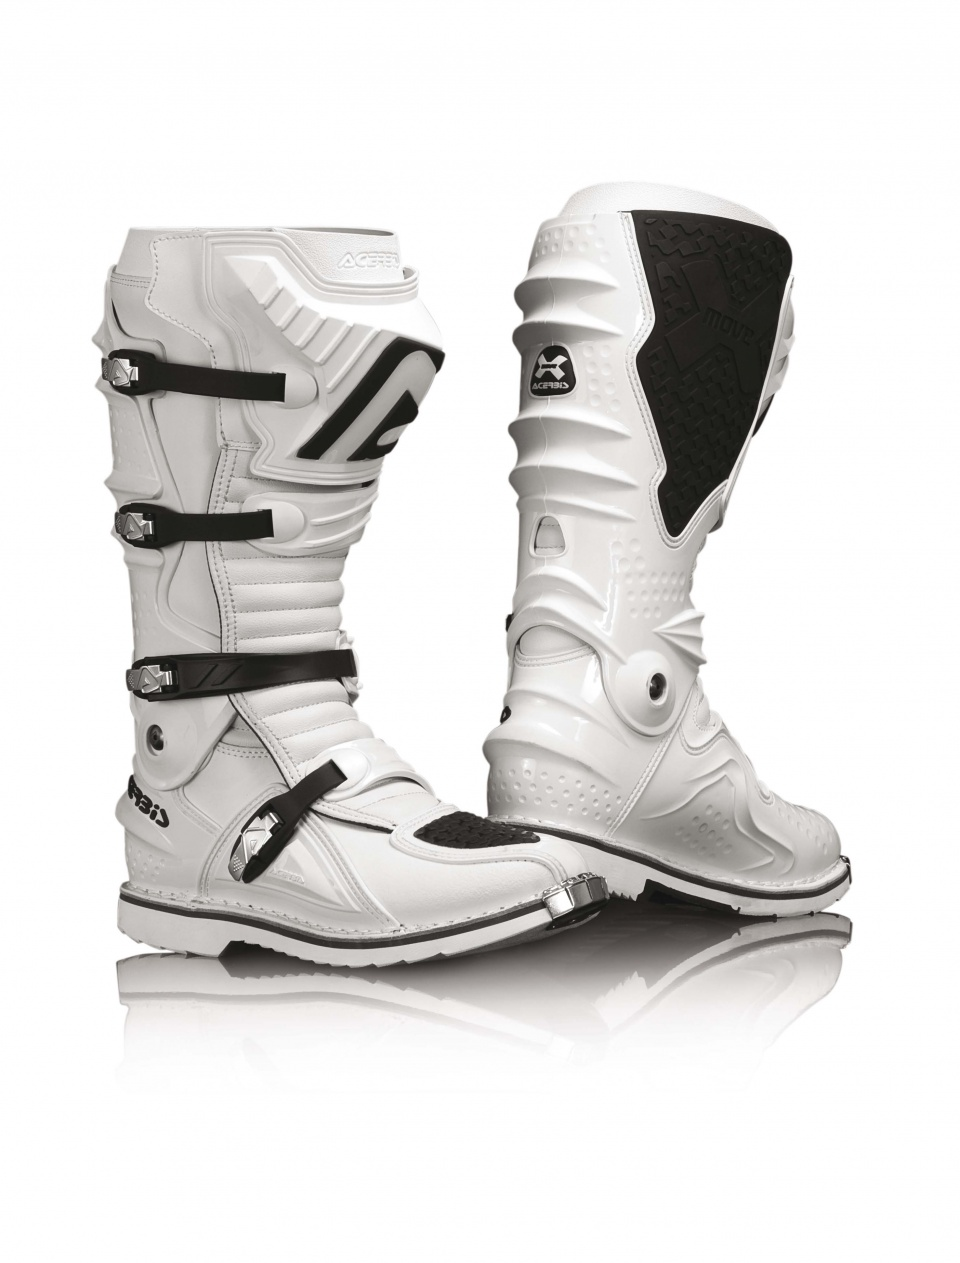 Motocross Boots Acerbis X-move White